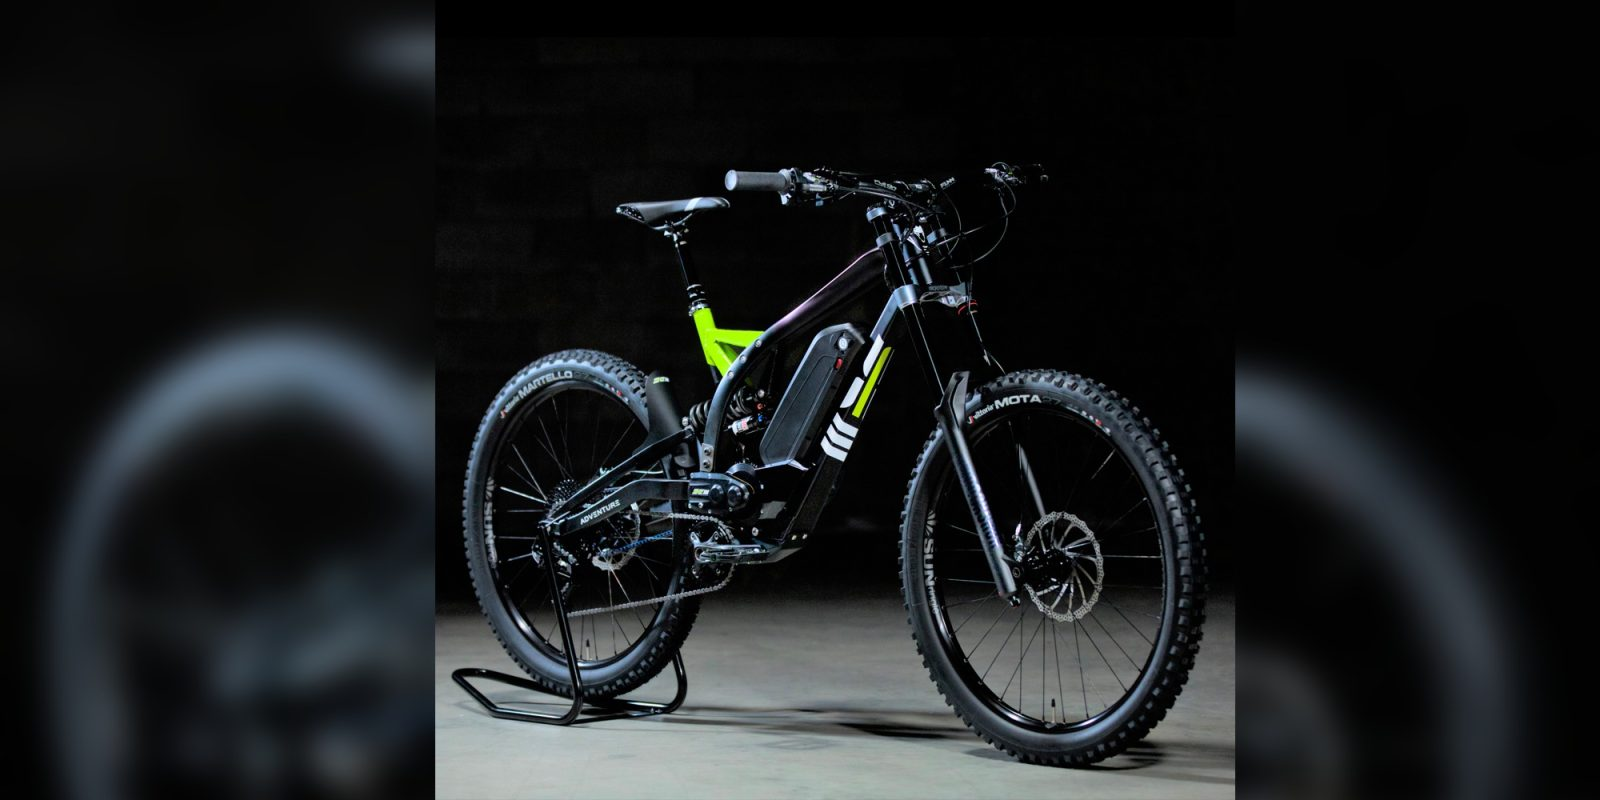 Watch this 4 kW electric dirt bike with pedals climb like a mountain goat